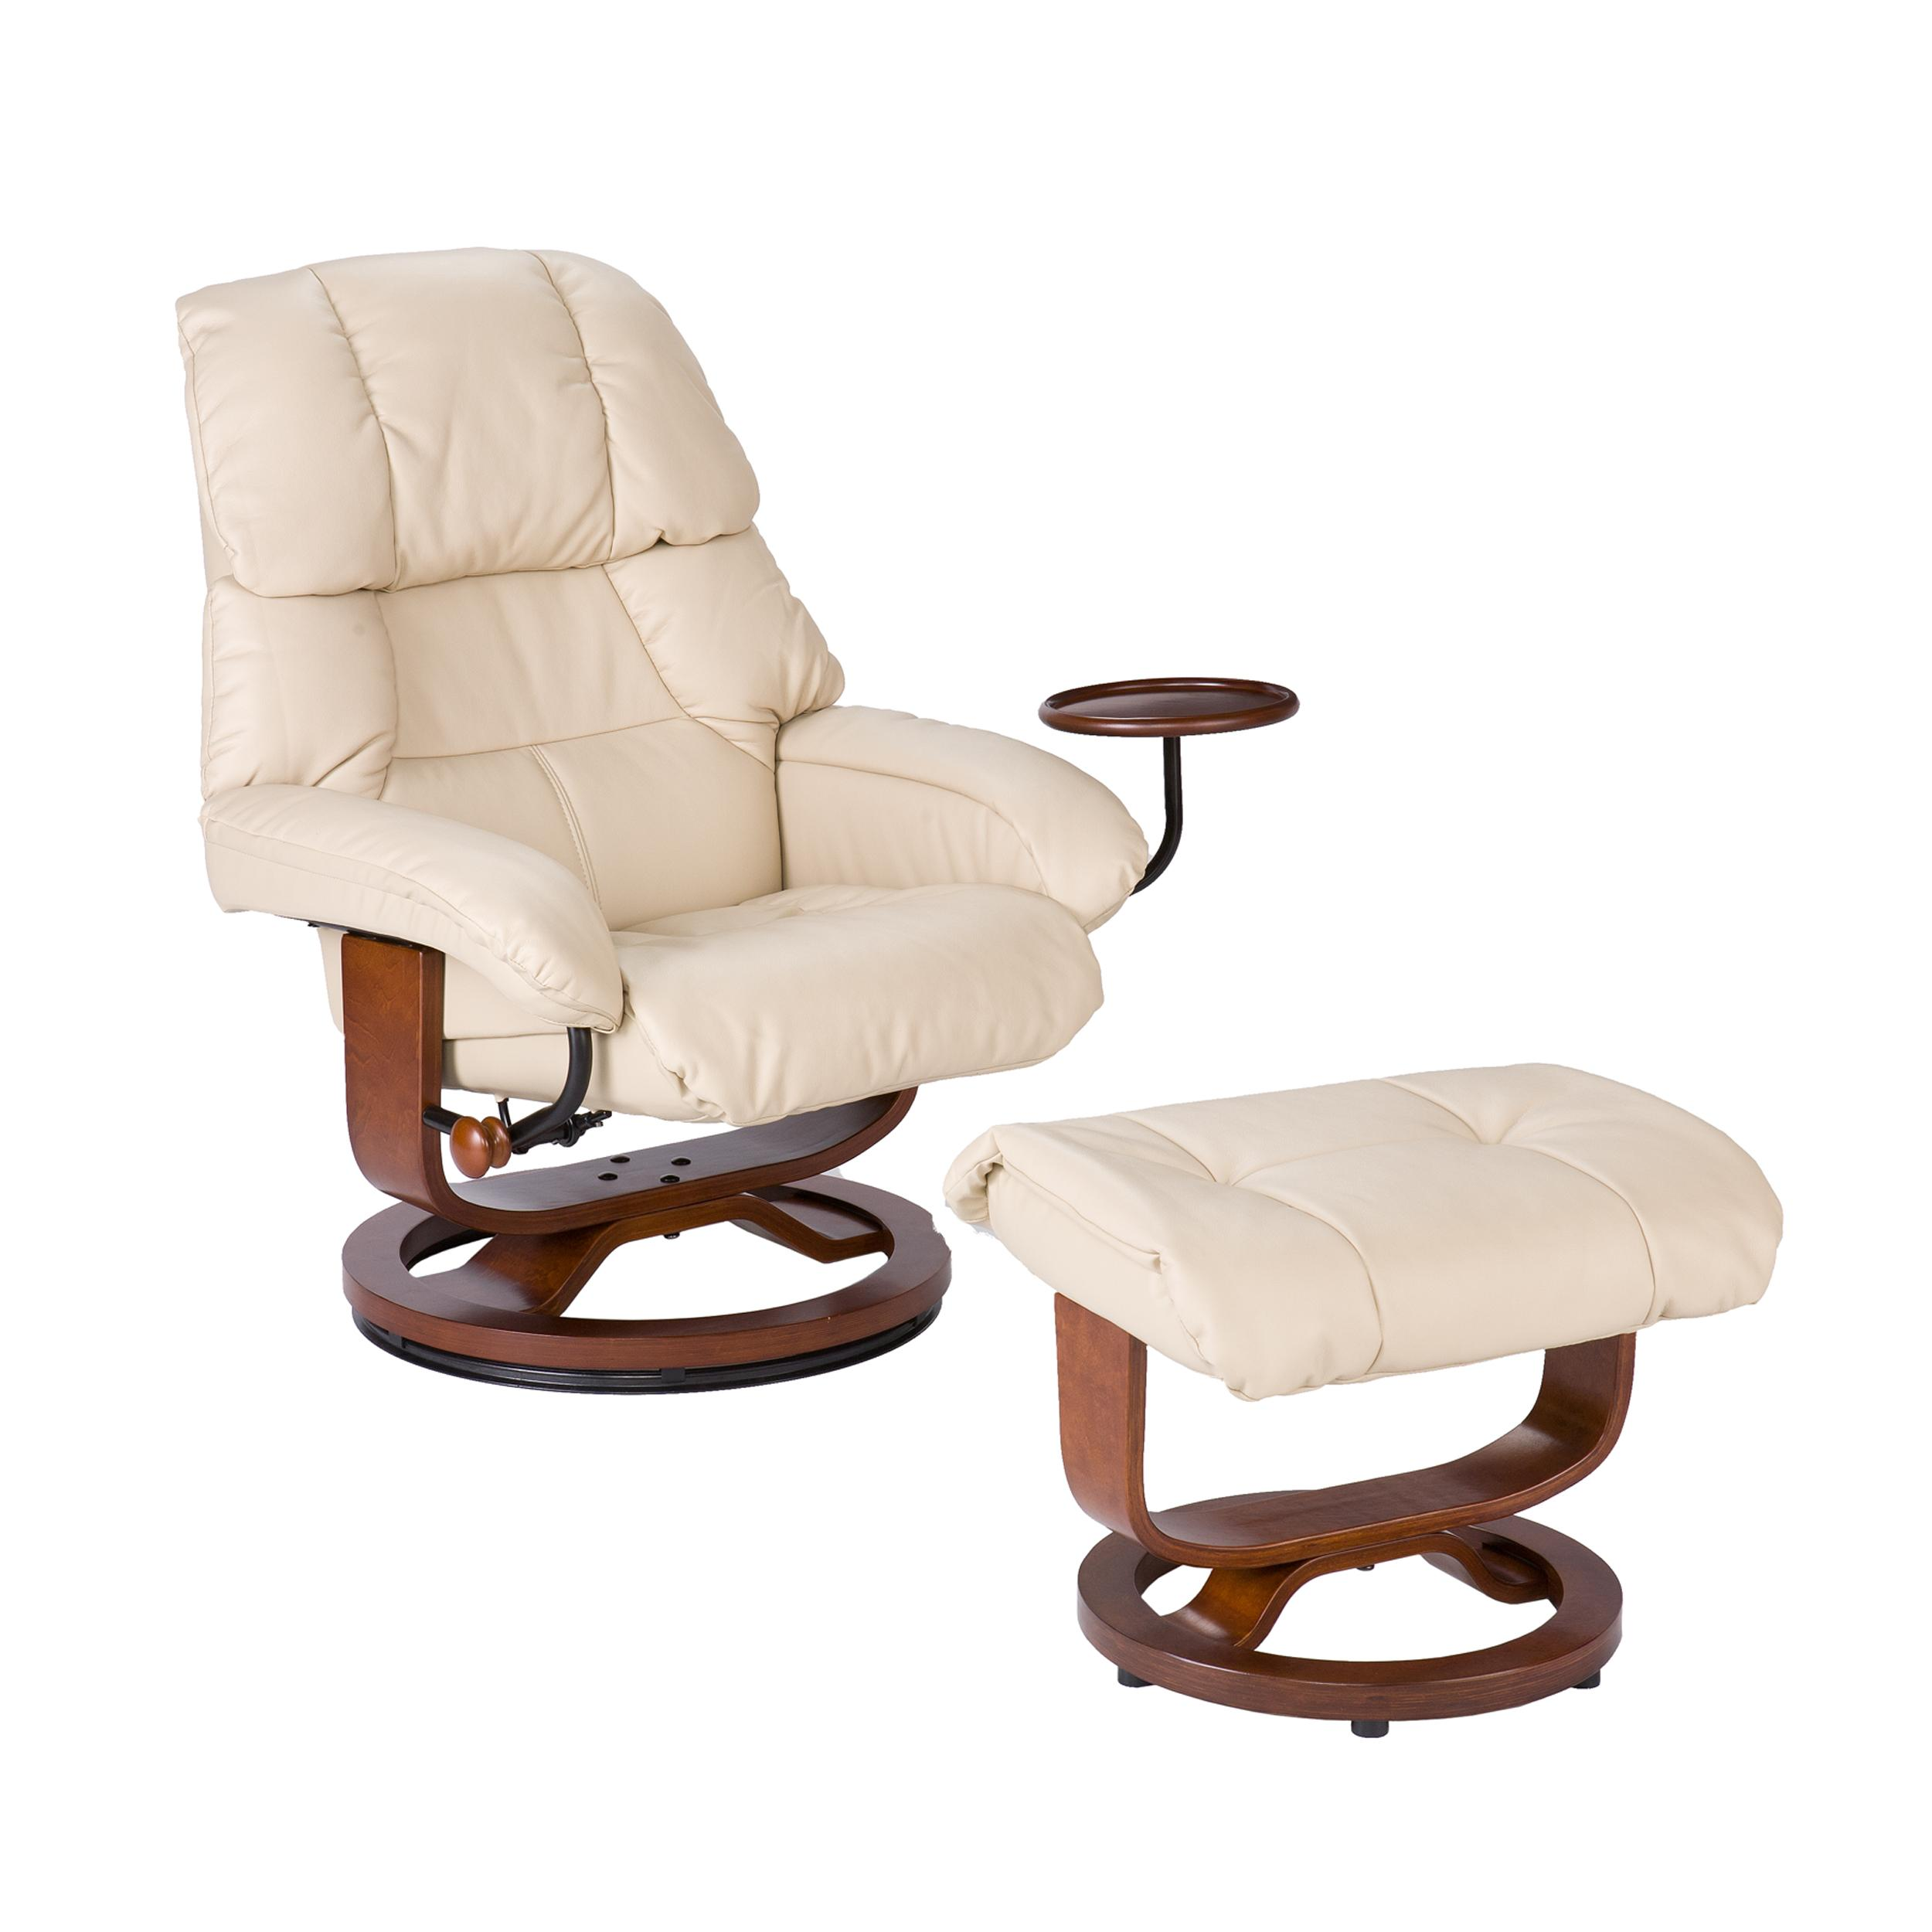 Swell Leather High Back Chairs Living Room Southern Enterprises Gmtry Best Dining Table And Chair Ideas Images Gmtryco